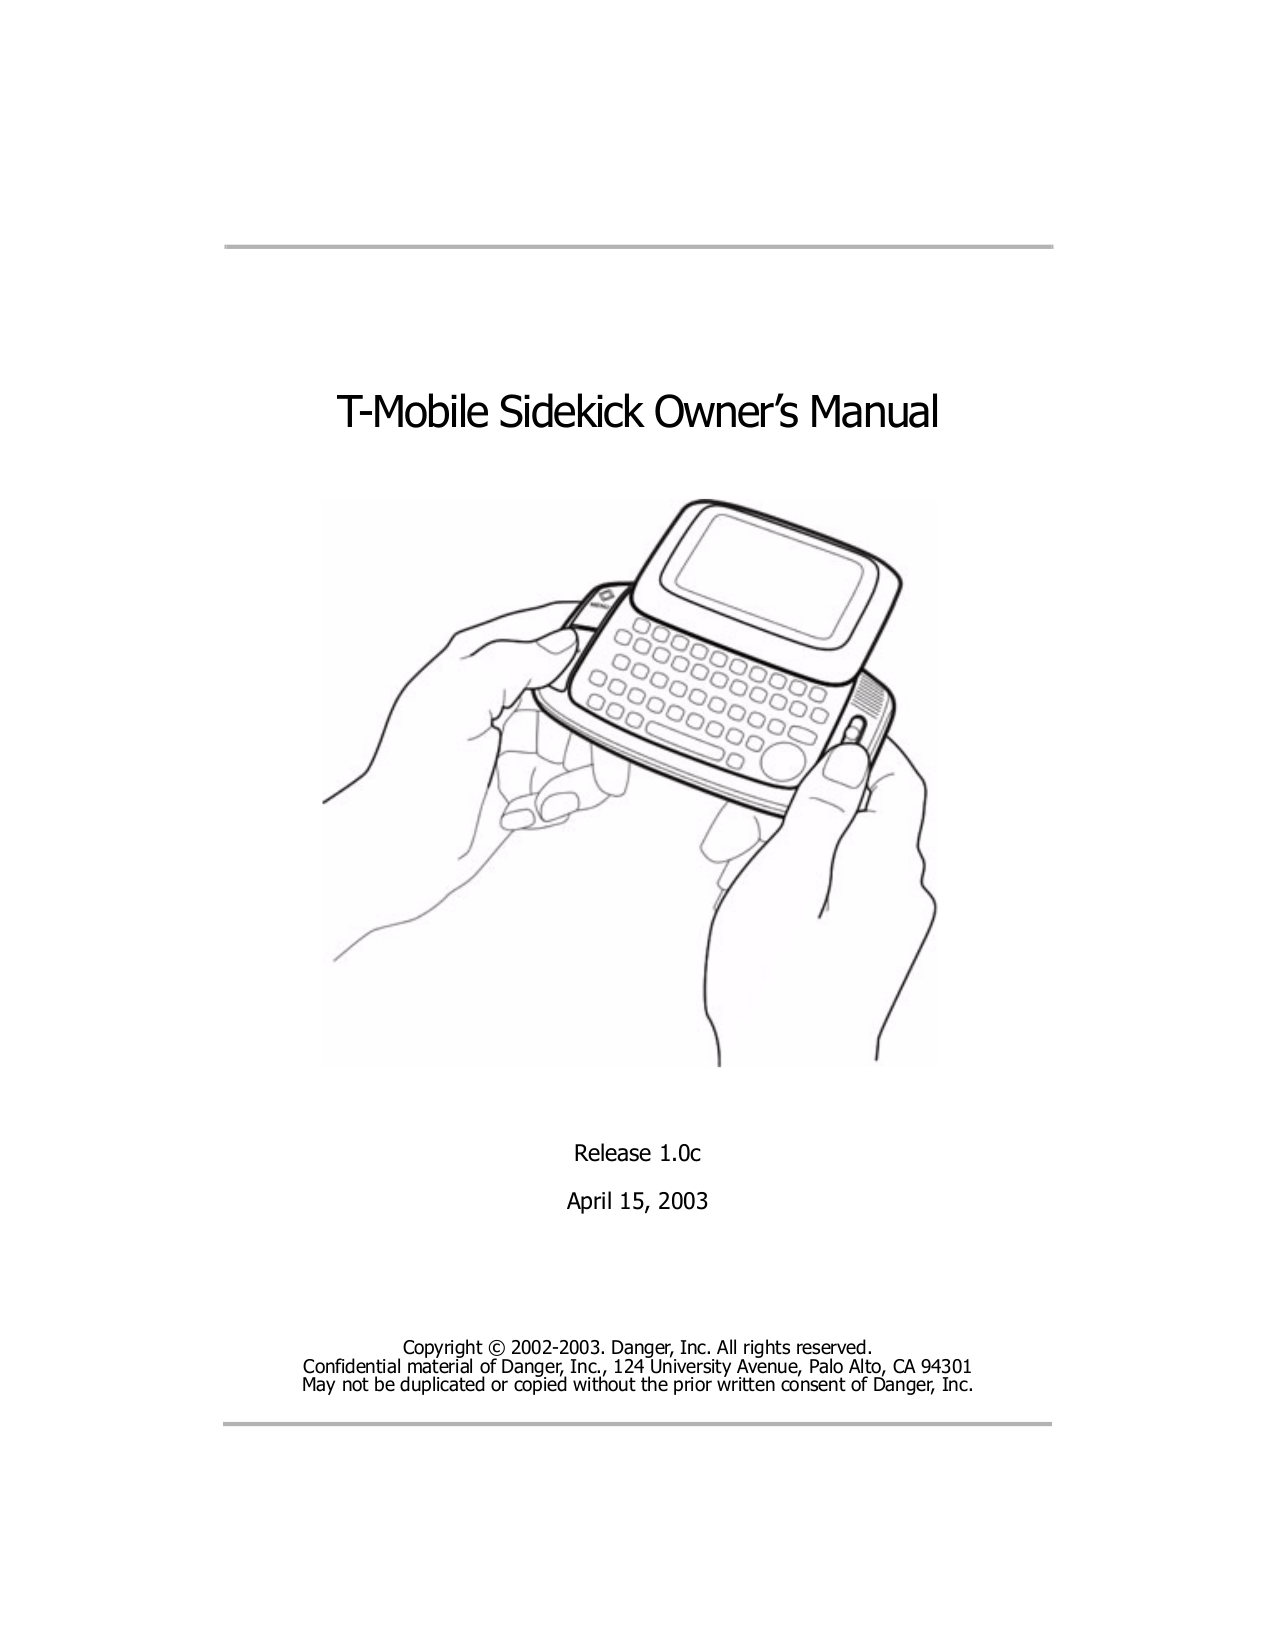 PDF manual for T-Mobile Cell Phone Sidekick